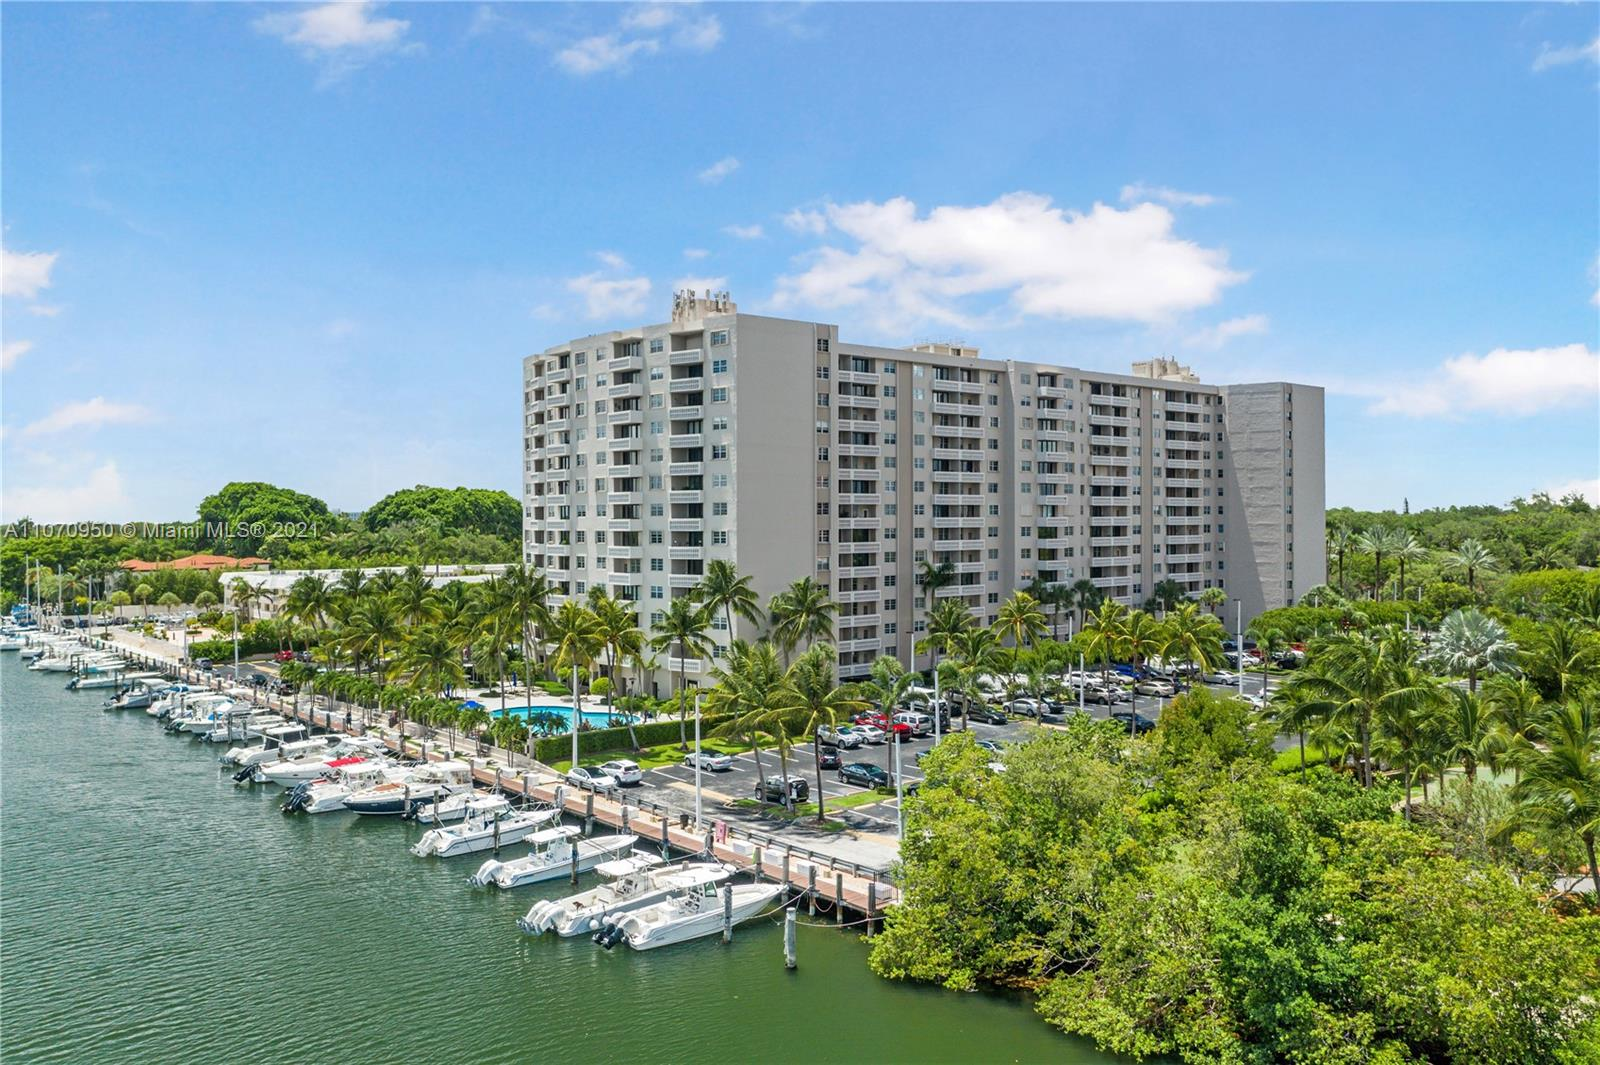 Gorgeous sunset views. A one-of-a-kind w/ custom woodwork throughout. Beautifully renovated w/ brand new porcelain floors throughout & full impact windows and doors. 1 assigned parking space + valet parking. Gables Waterway Towers provides 24/7 valet & security w/ doorman services. Amenities include Heated Pool, Gym, and Game/Party Rooms. HOA includes electricity for AC, Basic Cable, Water, and Building Insurance. Unit owners can add washer/dryer to their unit w/ proper permitting and approval. The building recently finished an $8.5M renovation and received their 40 & 50 year Miami Dade Recertification improvements for mechanical and safety code updates. Close proximity to the heart of Coconut Grove, UM, Downtown Coral Gables, and Airport.